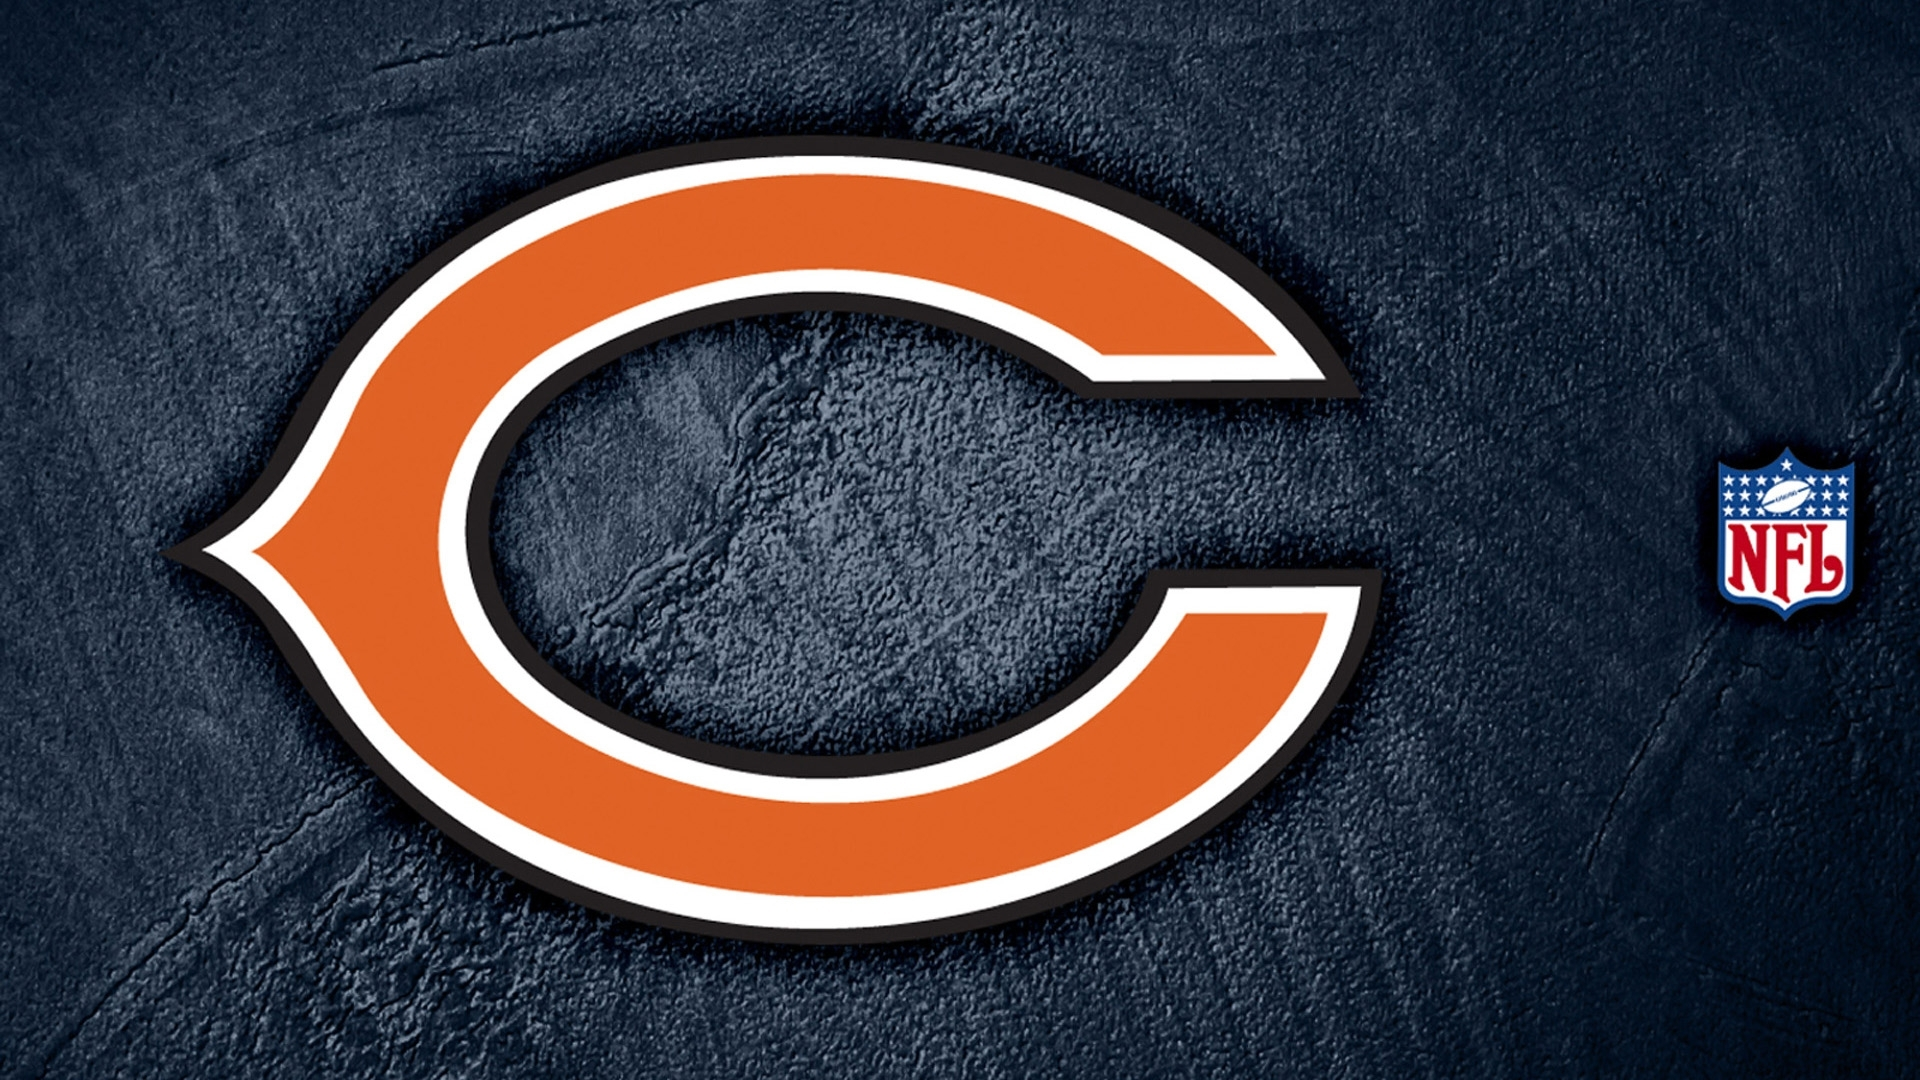 wallpaper.wiki-more-chicago-bears-wallpaper-wallpapers-chicago-bears